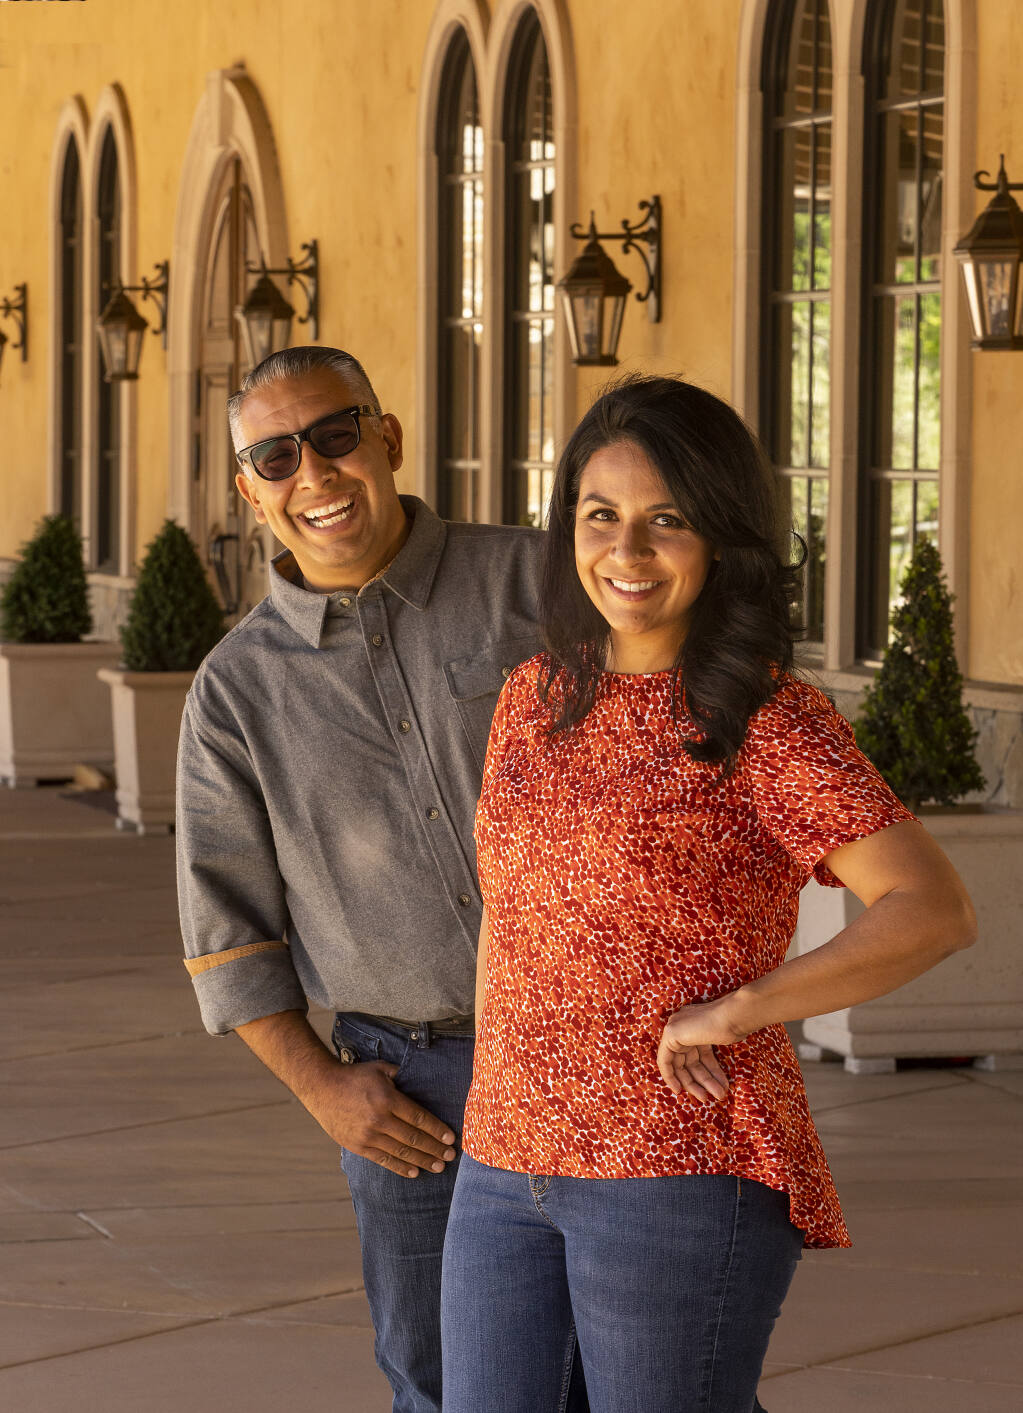 Aldina Vineyards winemaker Monica Lopez and her brother Francisco created Bacchus Landing in Healdsburg, a wine hospitality center with tasting rooms, event space, rooftop terrace and an outdoor piazza scheduled to open in spring 2021.  (John Burgess / The Press Democrat)